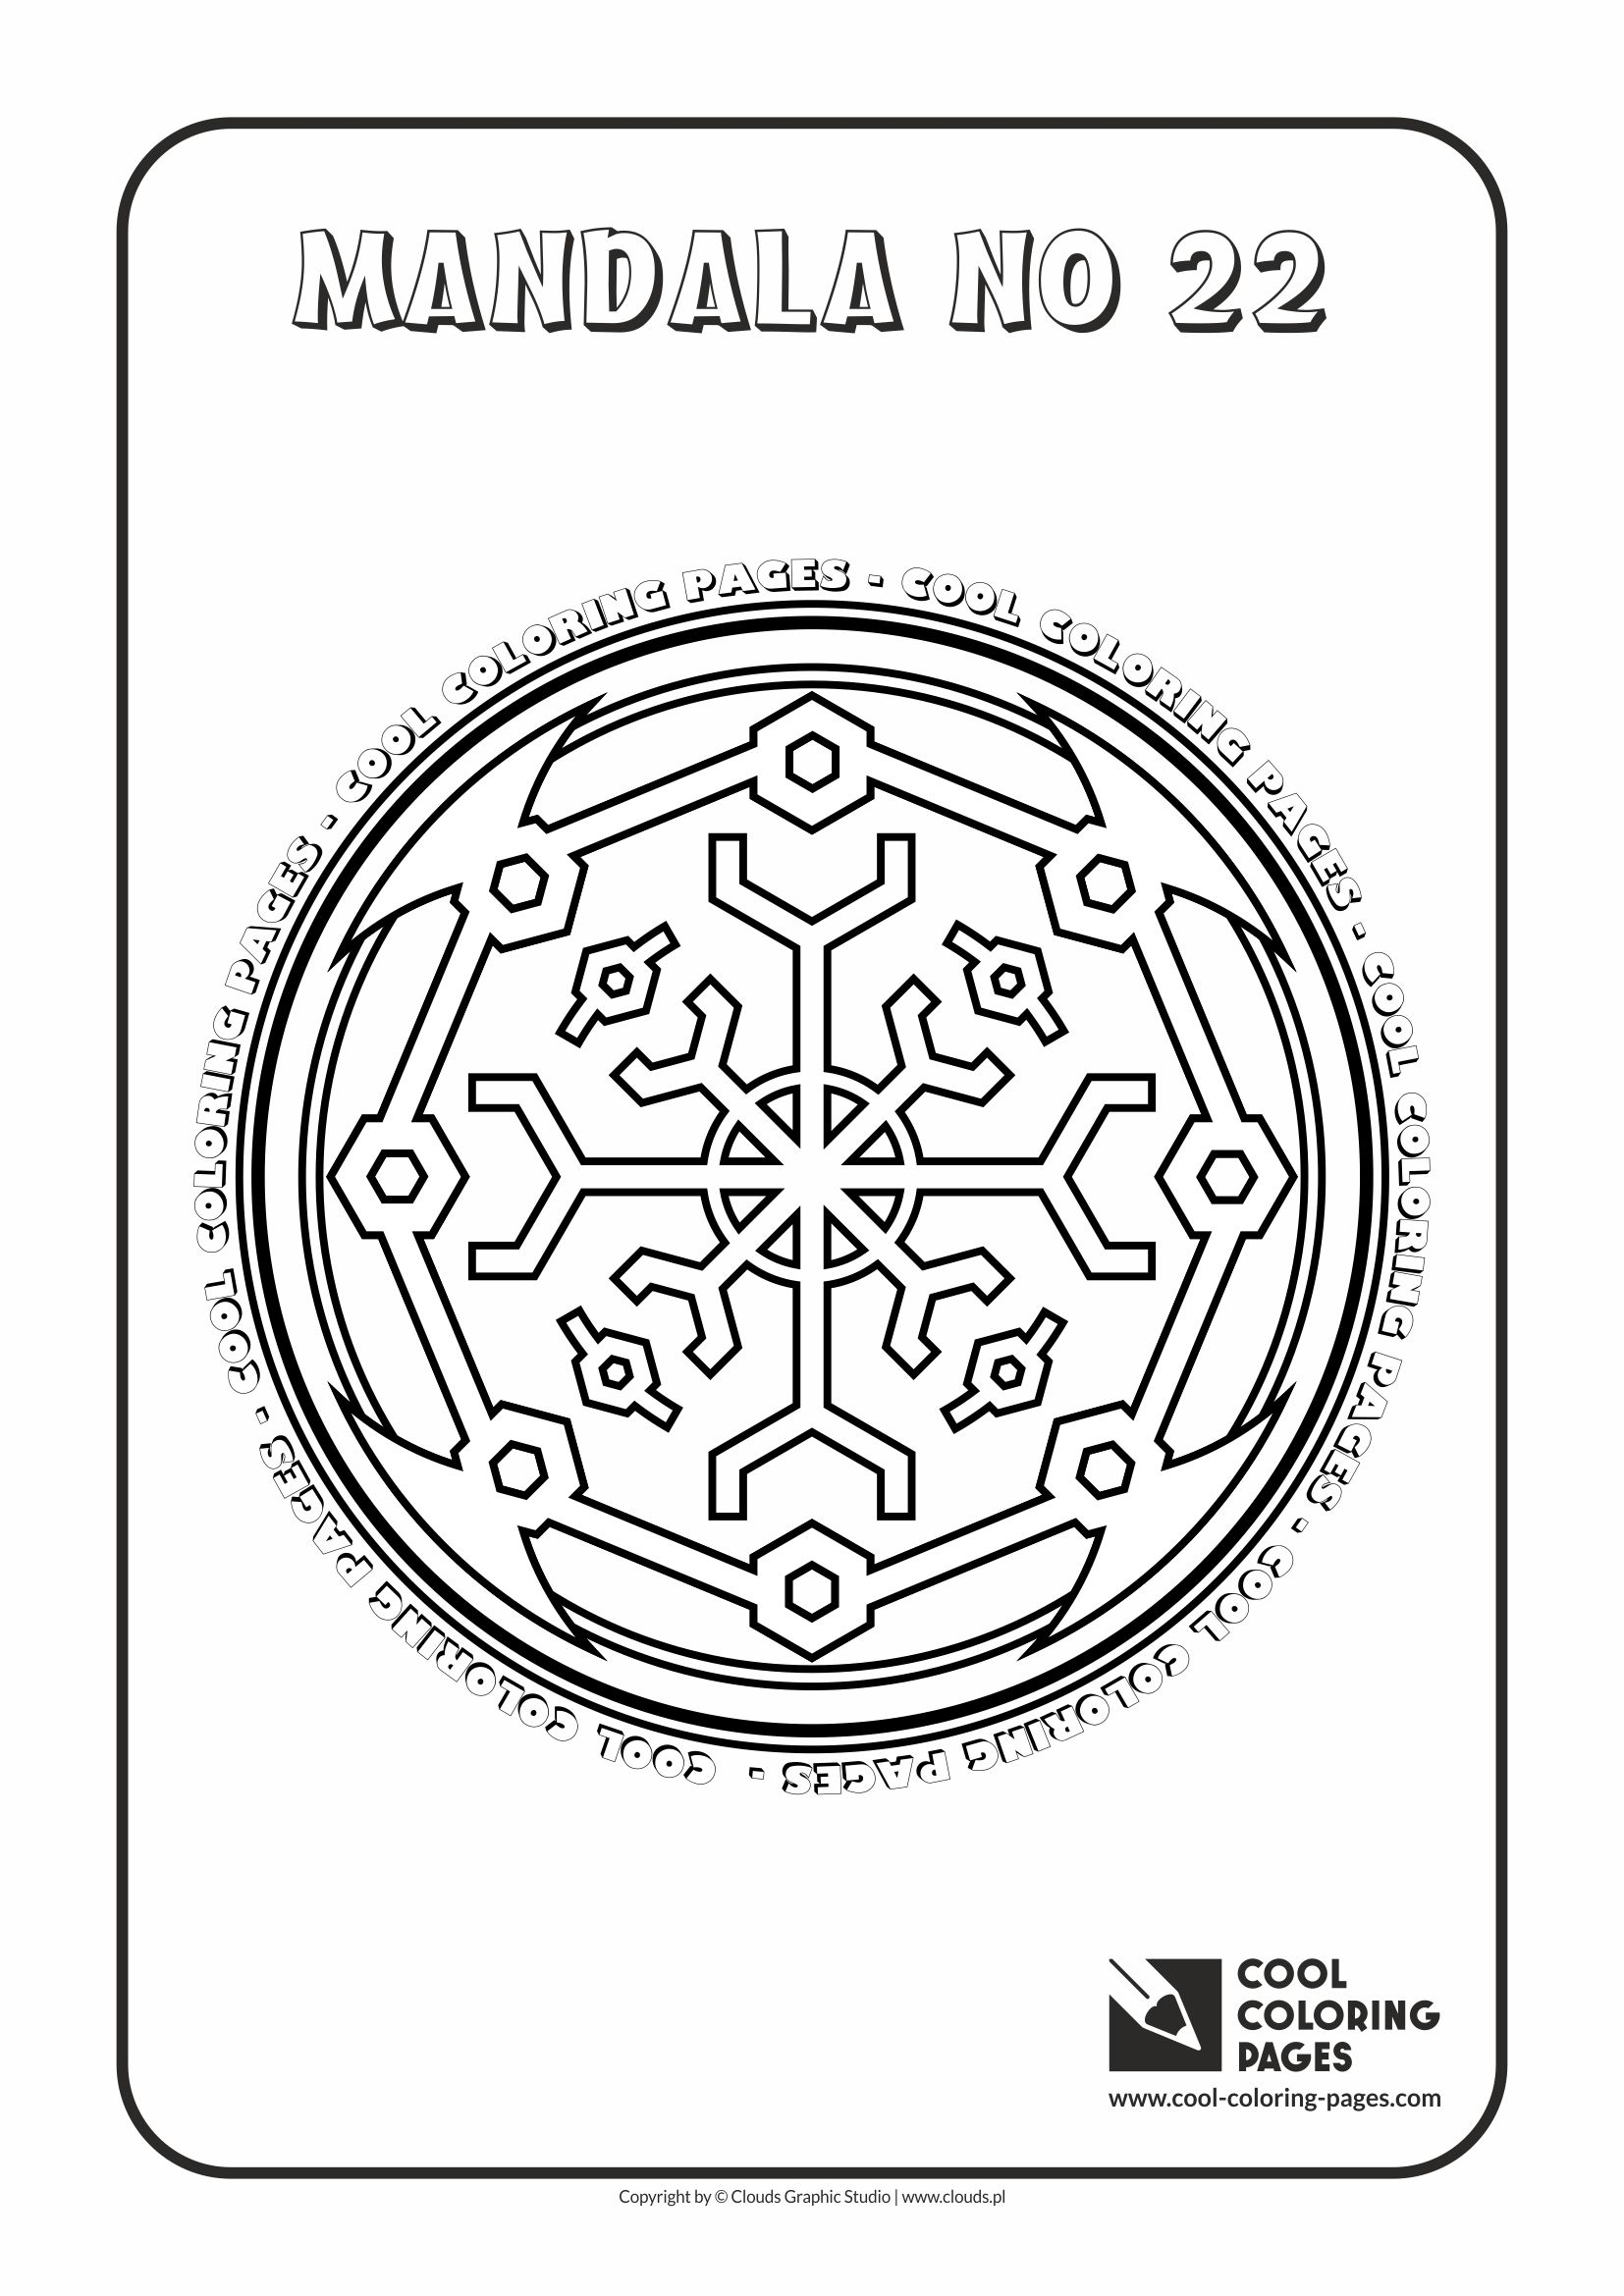 Cool Coloring Pages - Mandalas / Mandala no 22